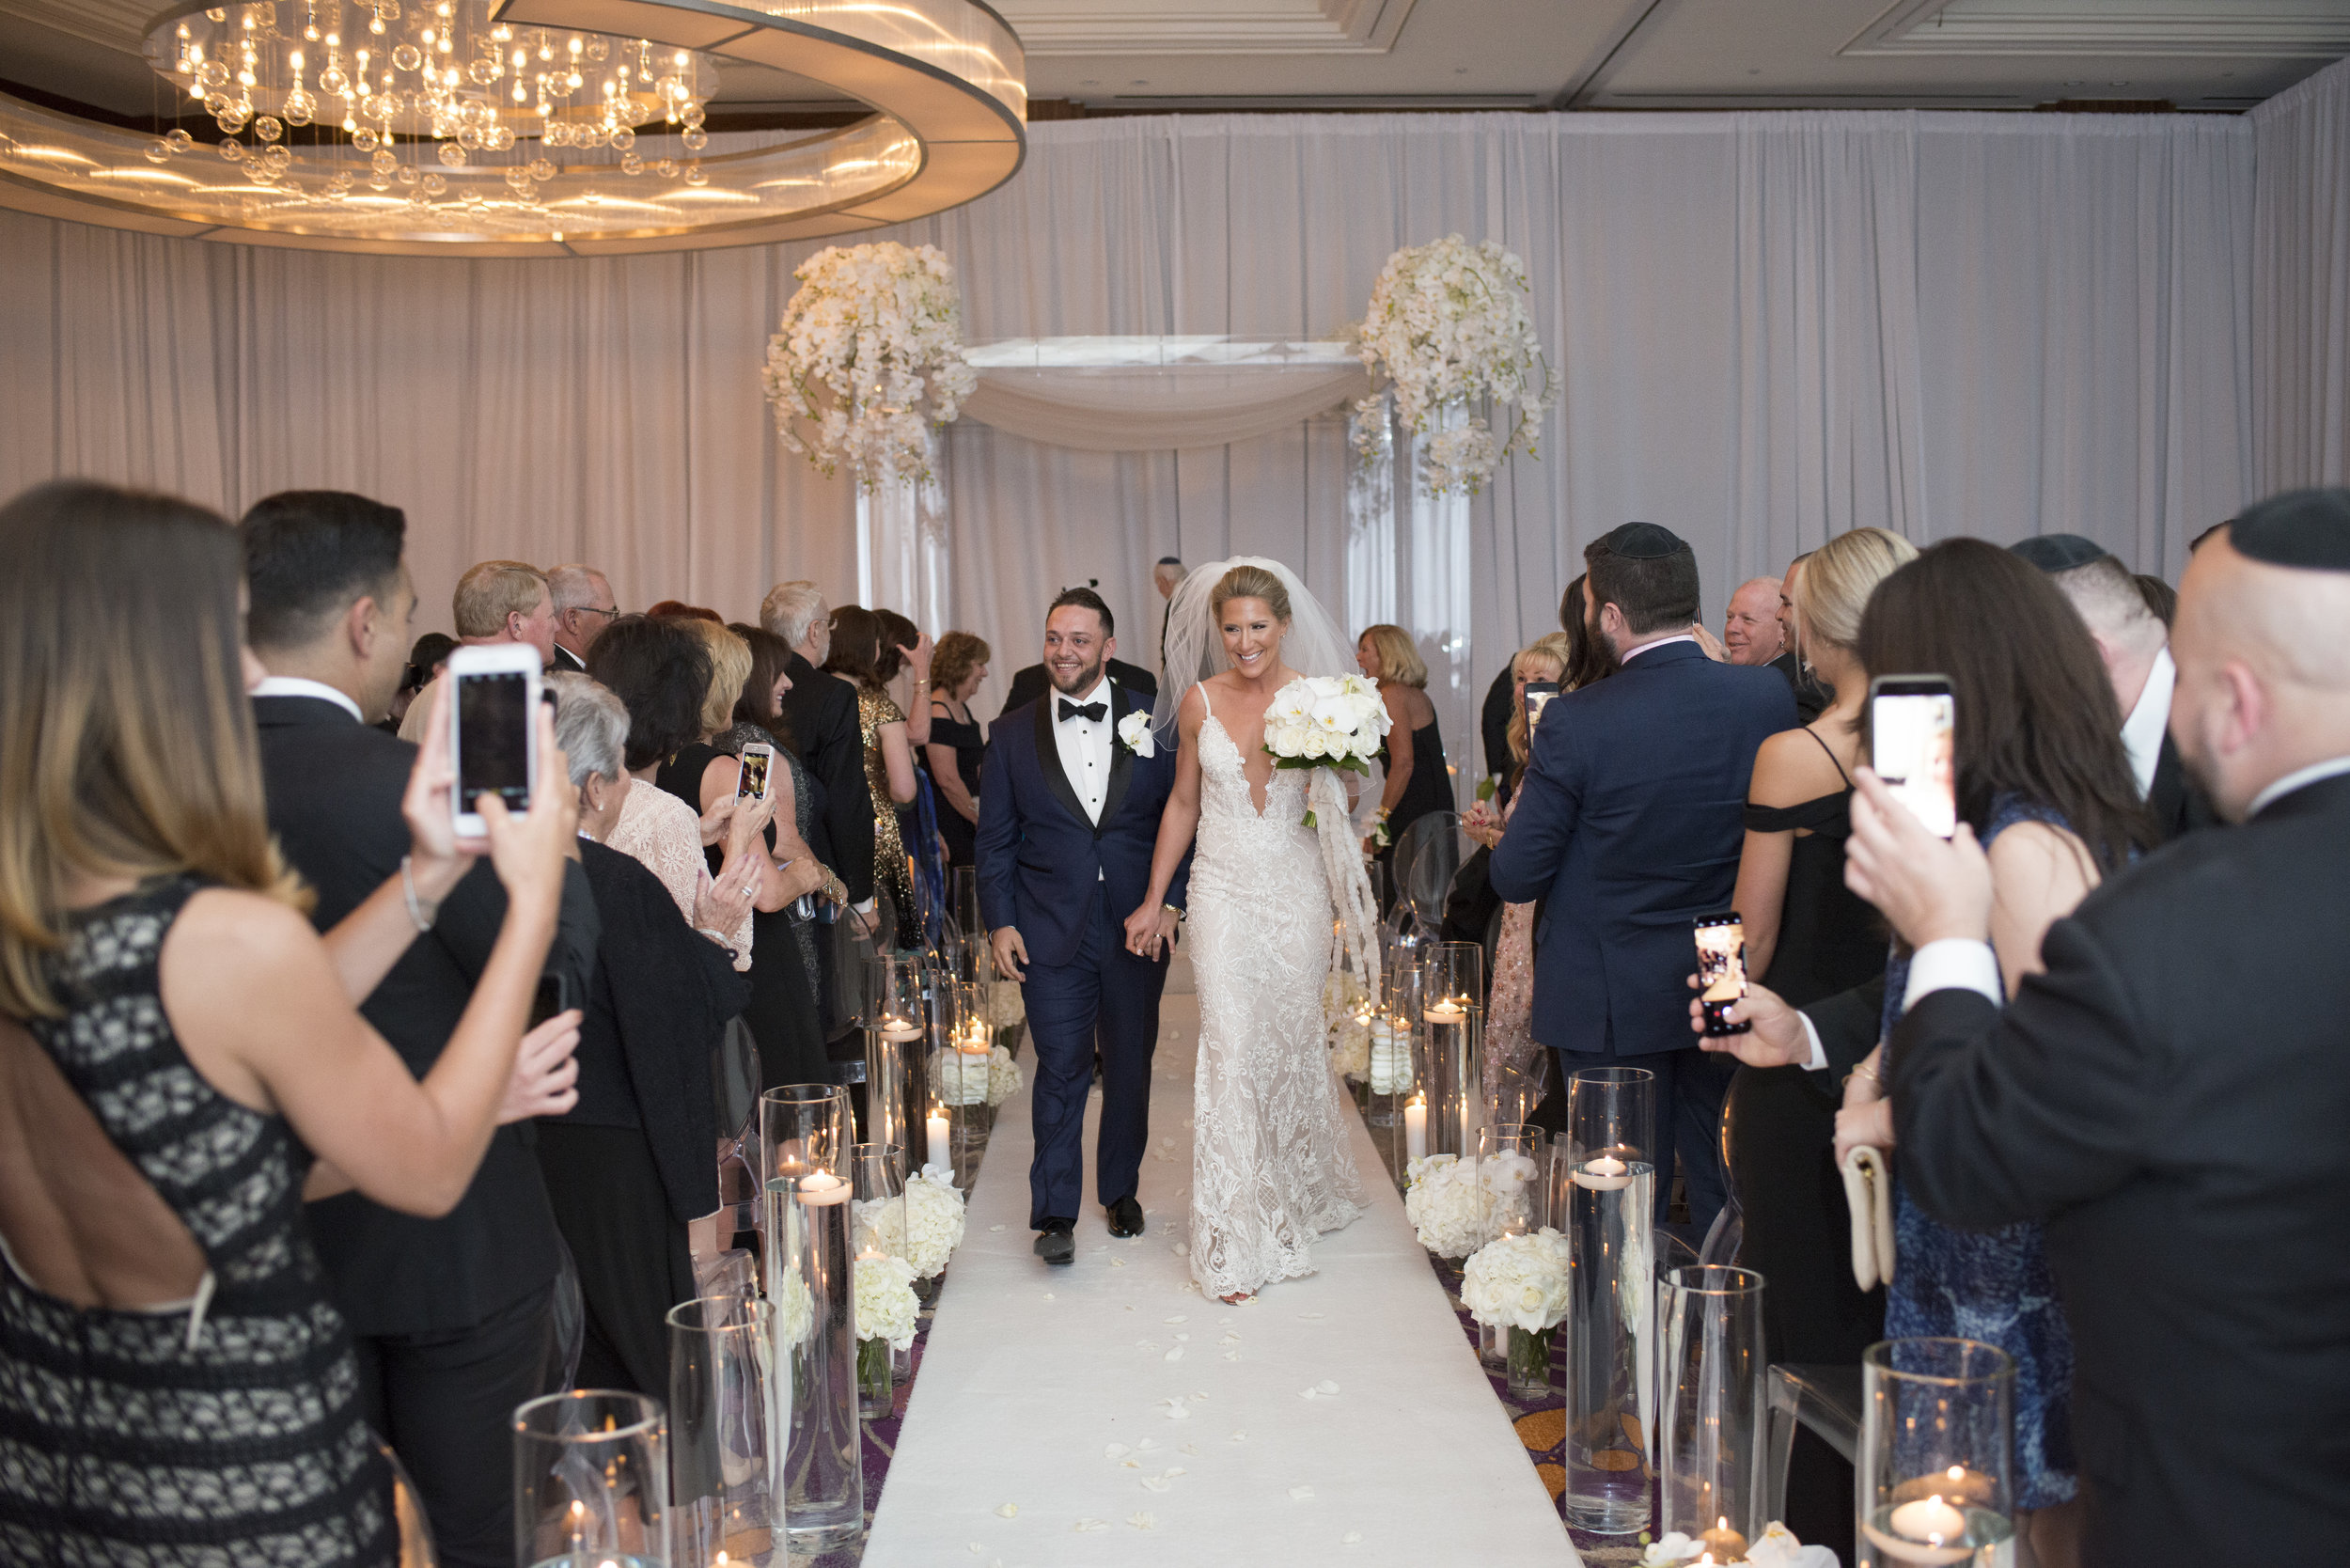 Mr. and Mrs. Wedding recessional in white on white wedding. WEDDING PLANNING & EVENT DESIGN • Andrea Eppolito Events ,PHOTOGRAPHY • AltF Photography ,FLORAL AND DECOR DESIGN & PRODUCTION • Destinations by Design , CATERING • Mandarin Oriental Las Vegas , COCKTAILS •  The Grand Bevy , WEDDING GOWN •  Galia Lahav ,SHOES •  Jimmy Choo